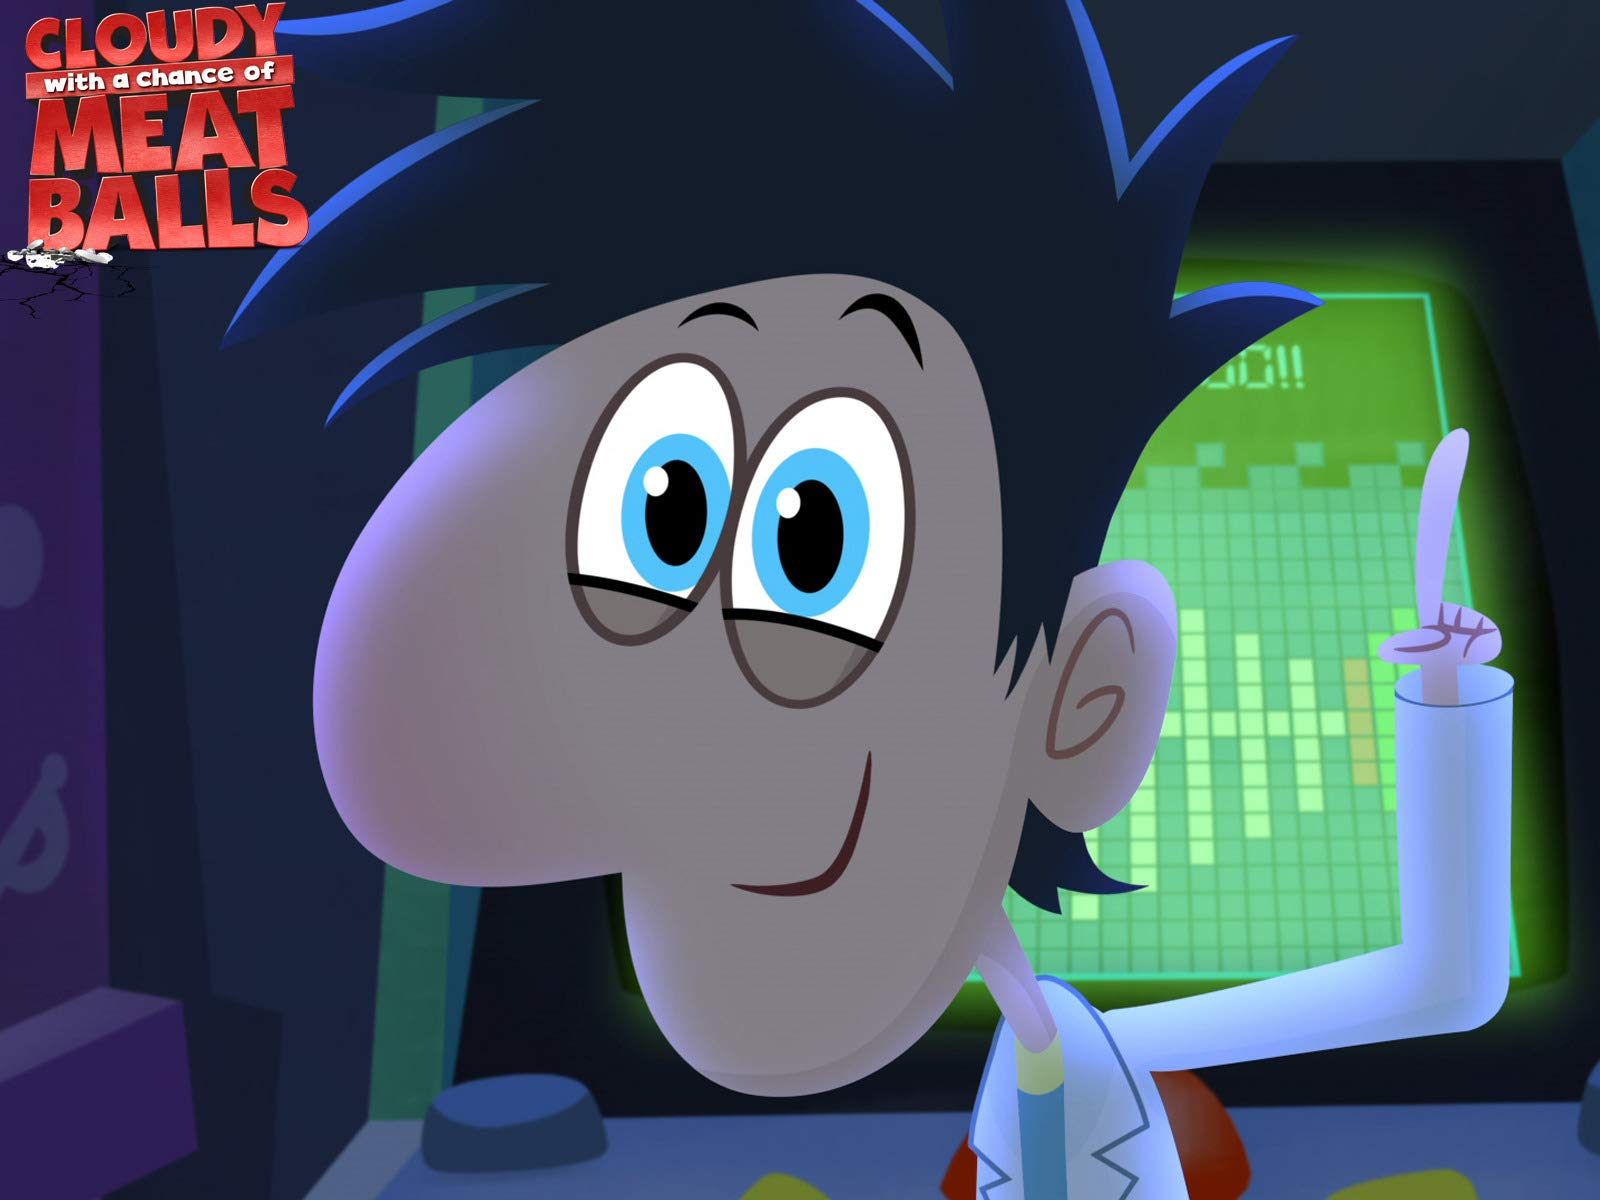 Watch Cloudy With A Chance Of Meatballs Season 2 Prime Video